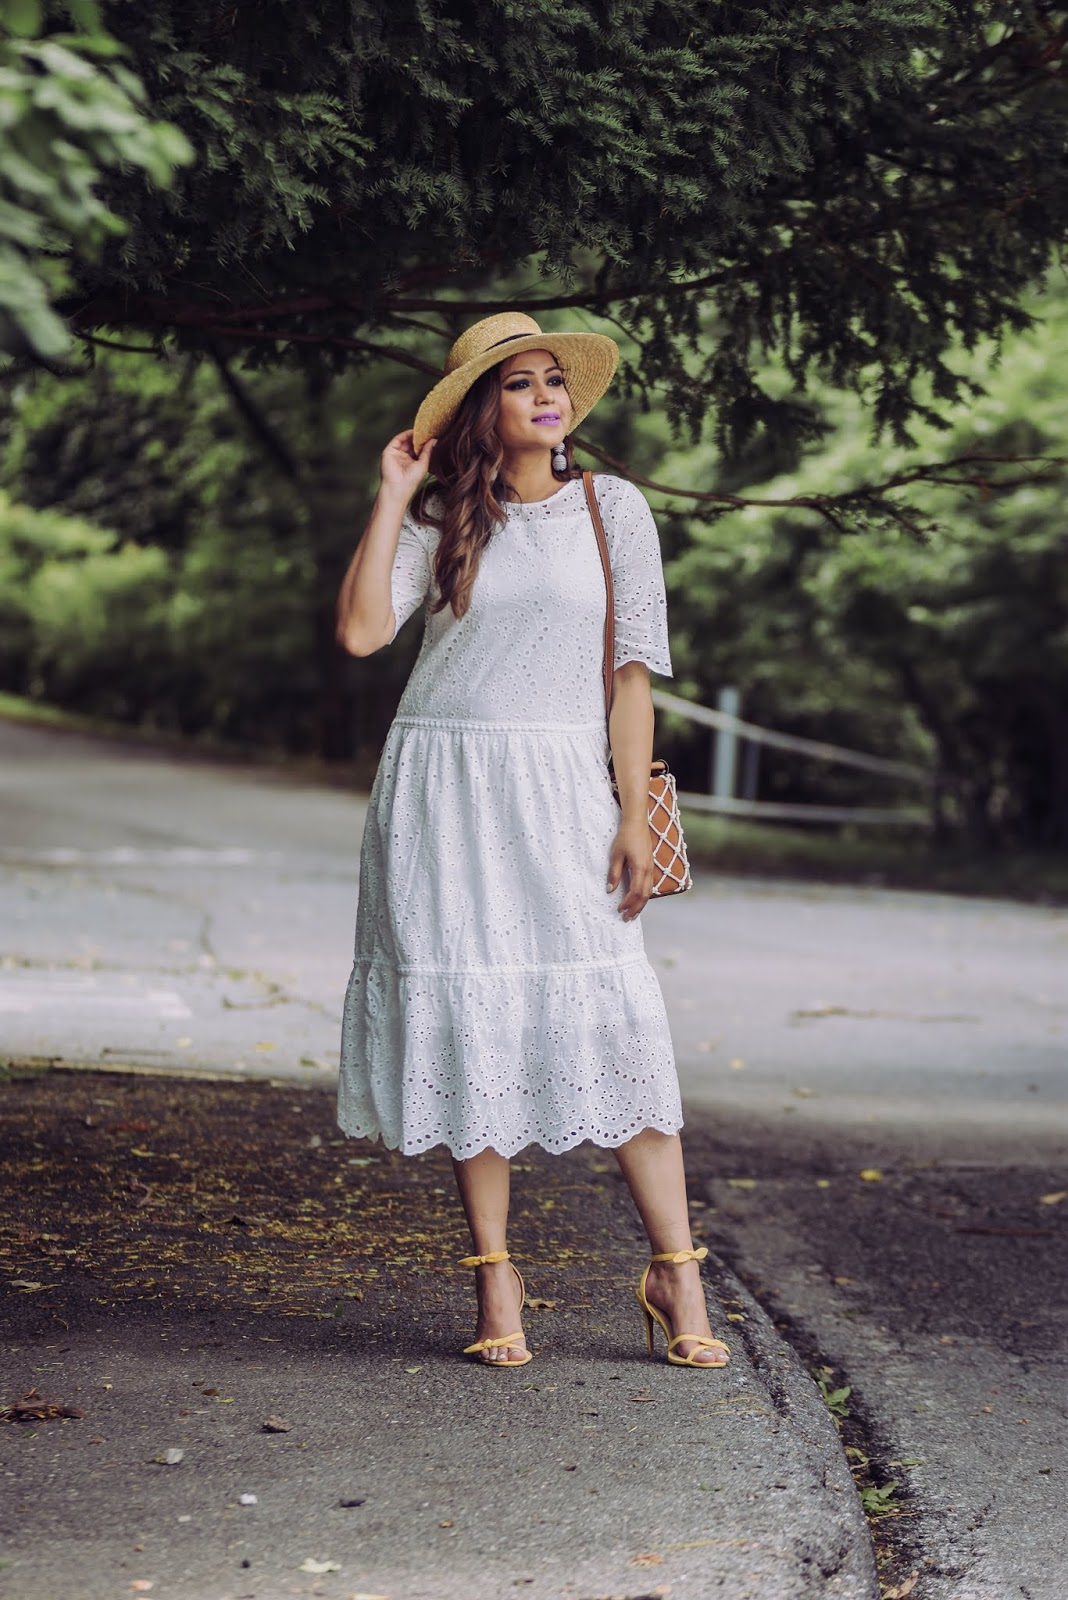 a southern belle, chicwish white eyelet dress, chichwish review, fashion blogger, style, sumer style, whote after labor day, instacool, ootd, yellow target sandlas, who what wear sandals, myriad musings